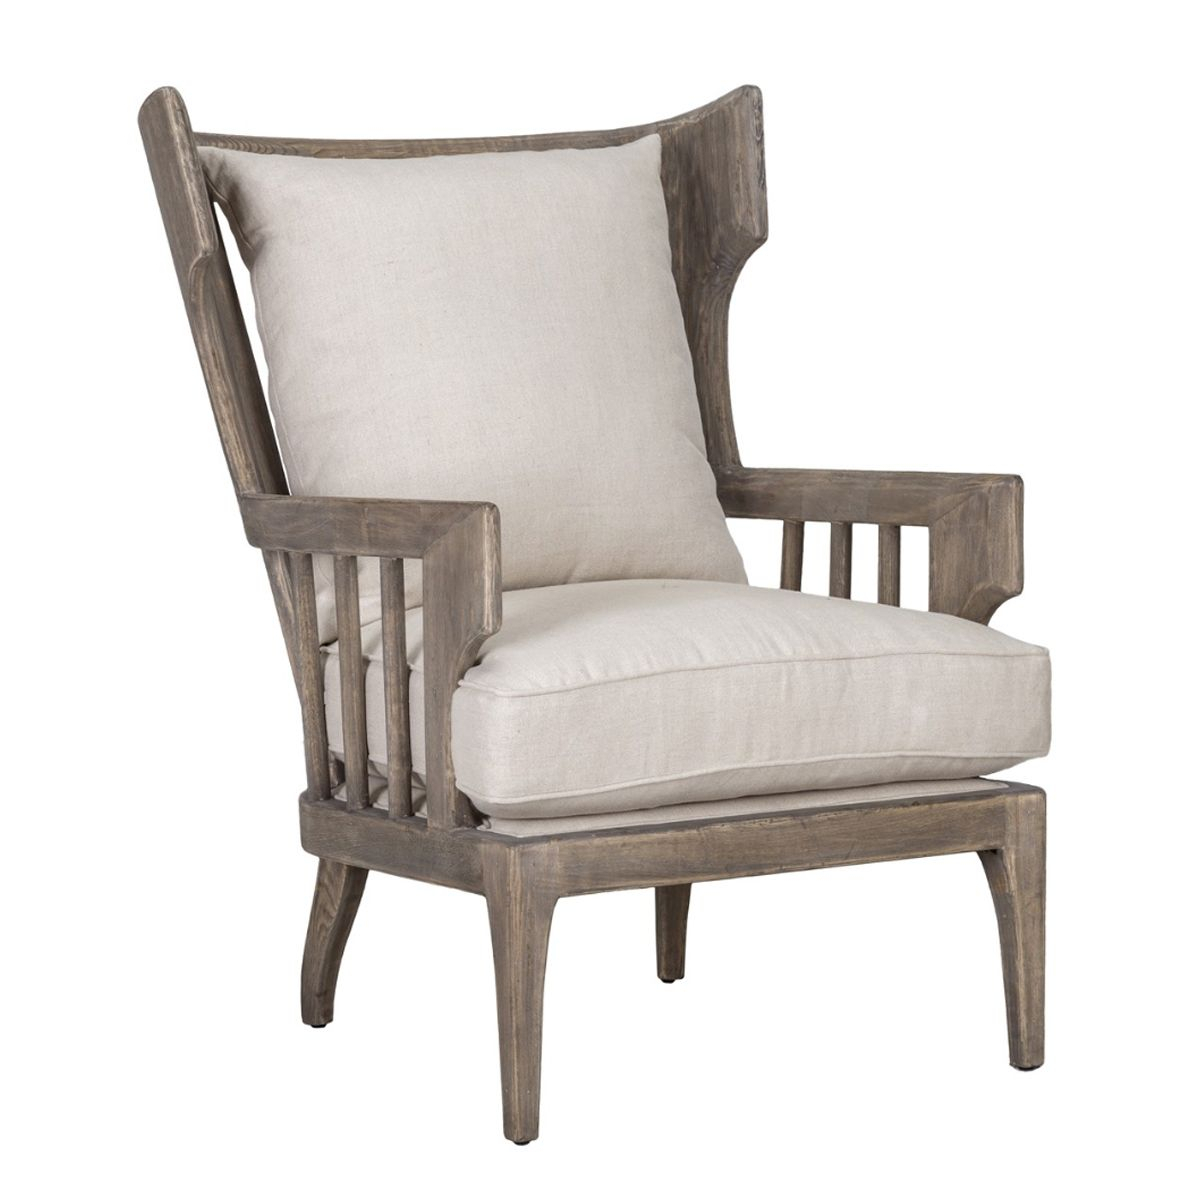 Lawrence Accent Chair | New Home | Pinterest Within Circuit Swivel Accent Chairs (View 4 of 25)